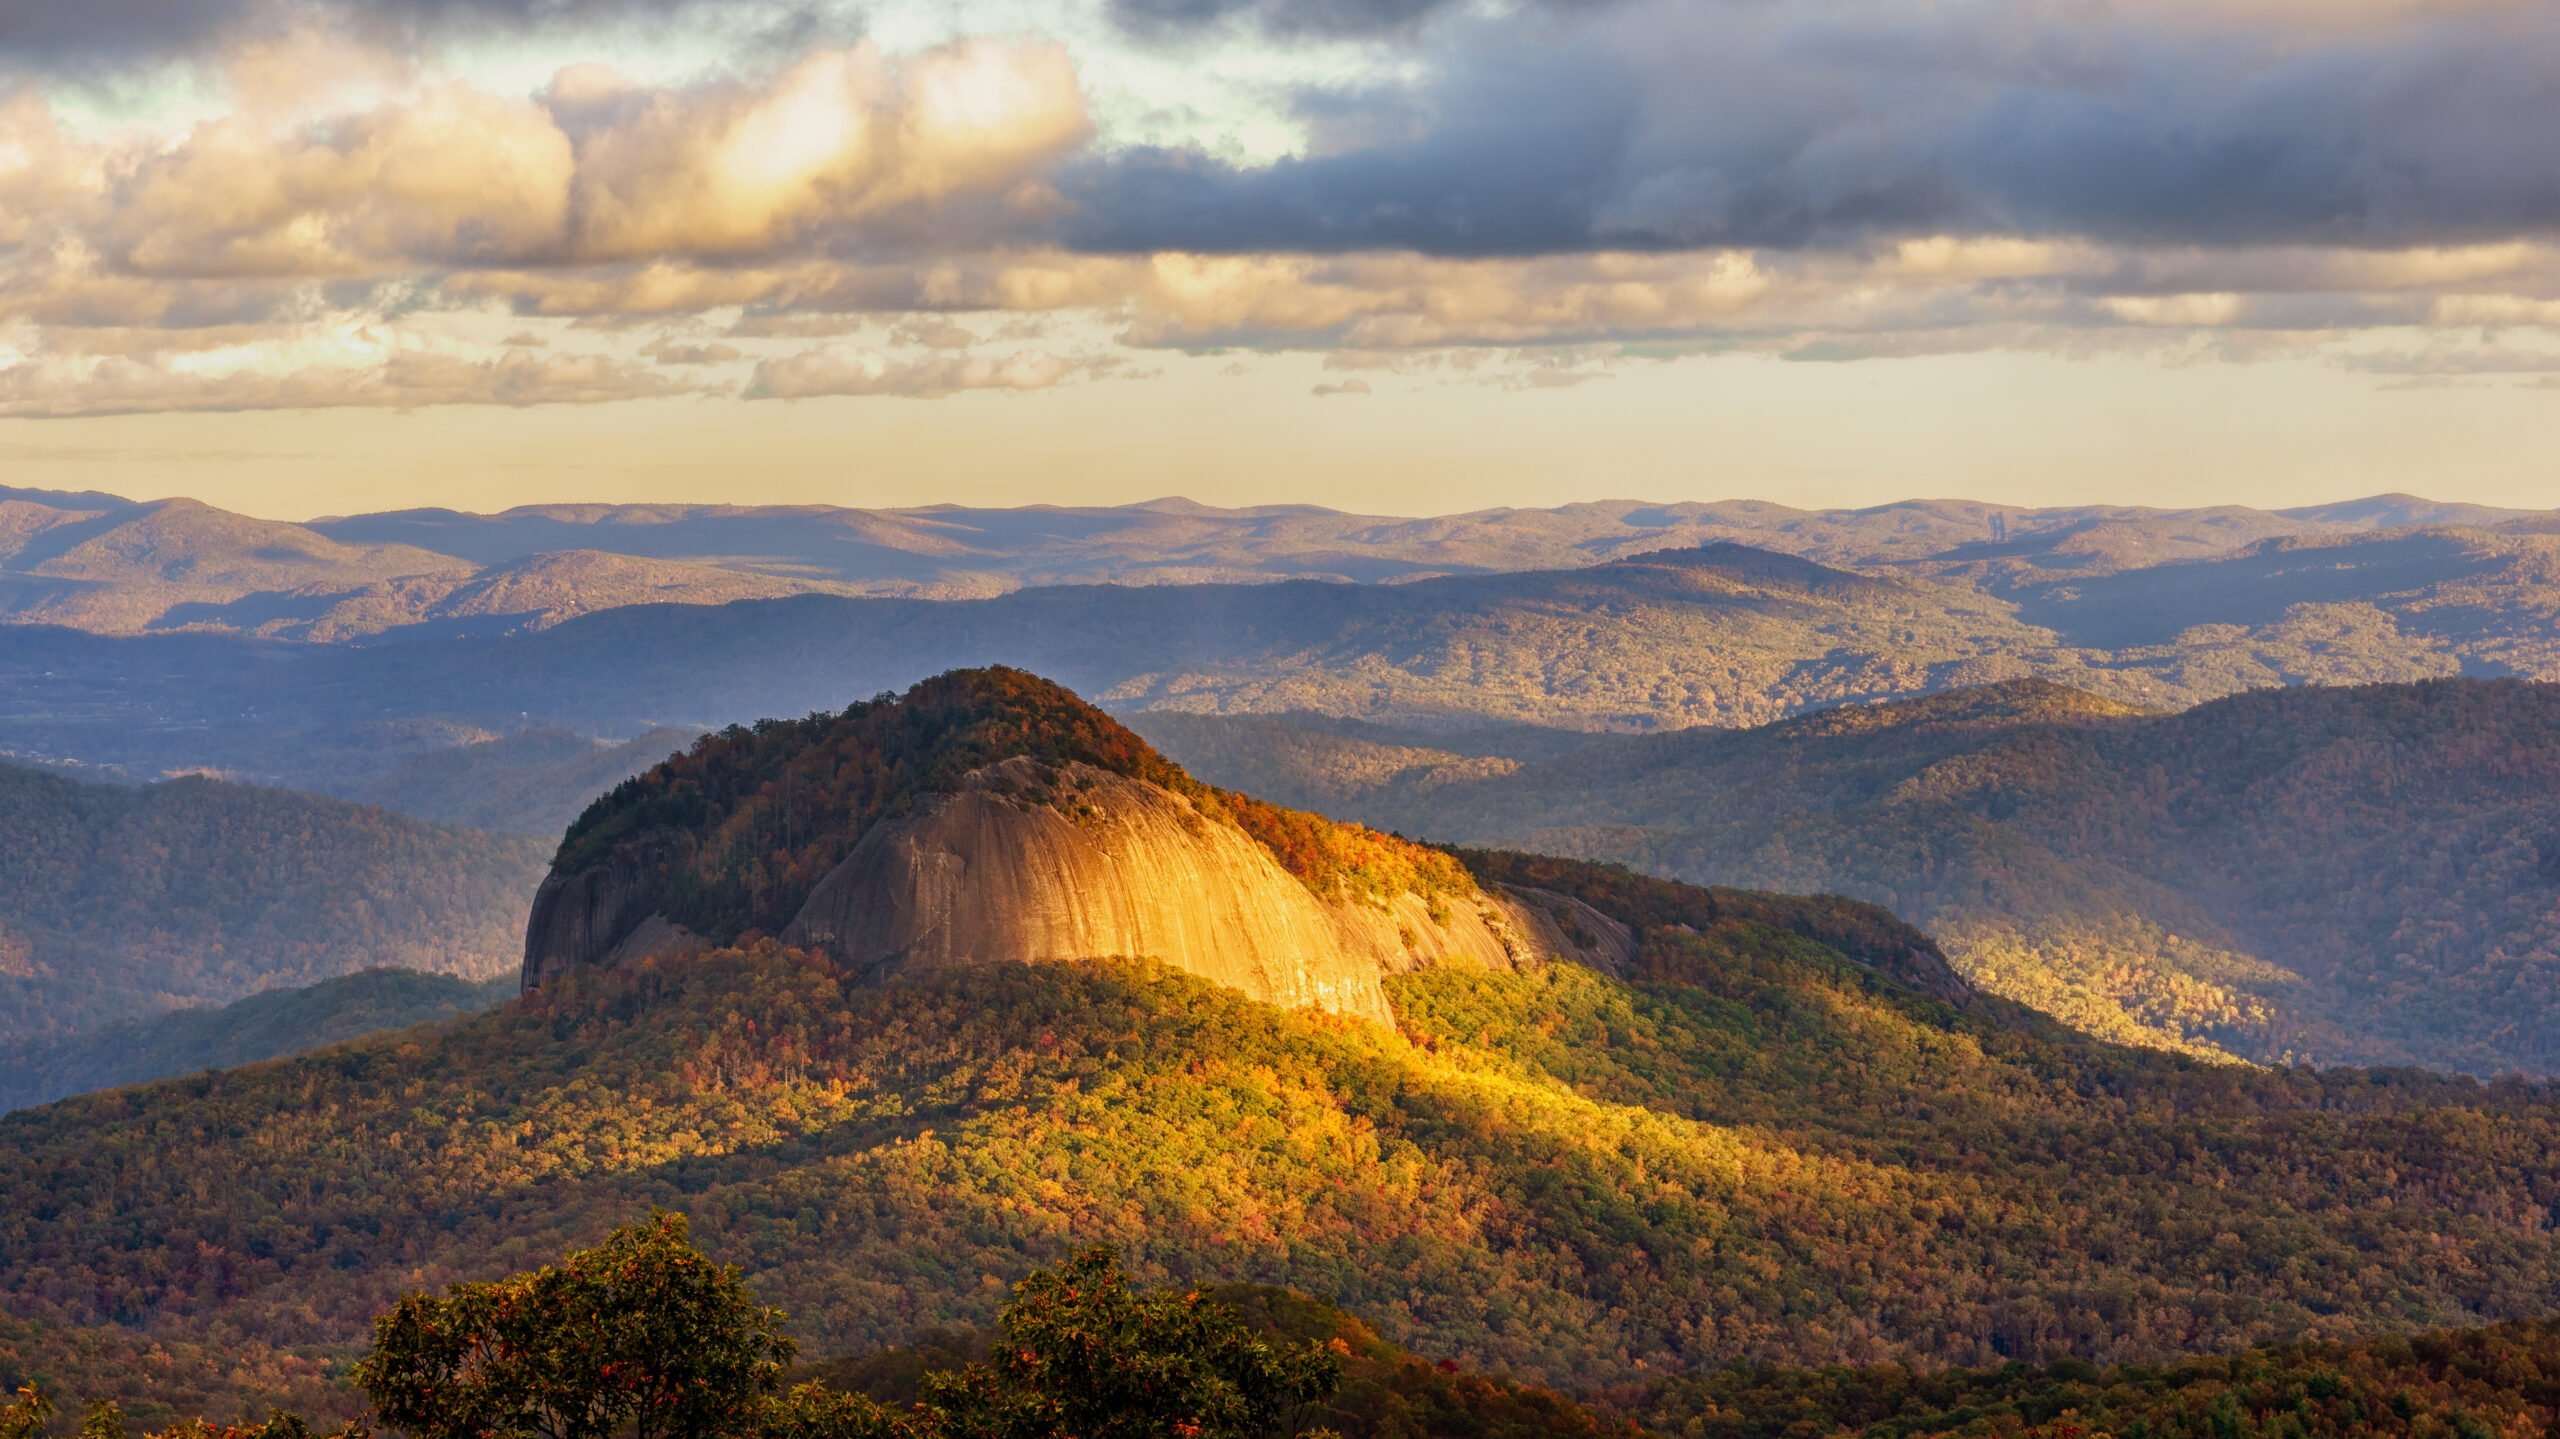 Looking Glass Rock from the Blue Ridge Parkway in Autumn - Asheville Bike Tours